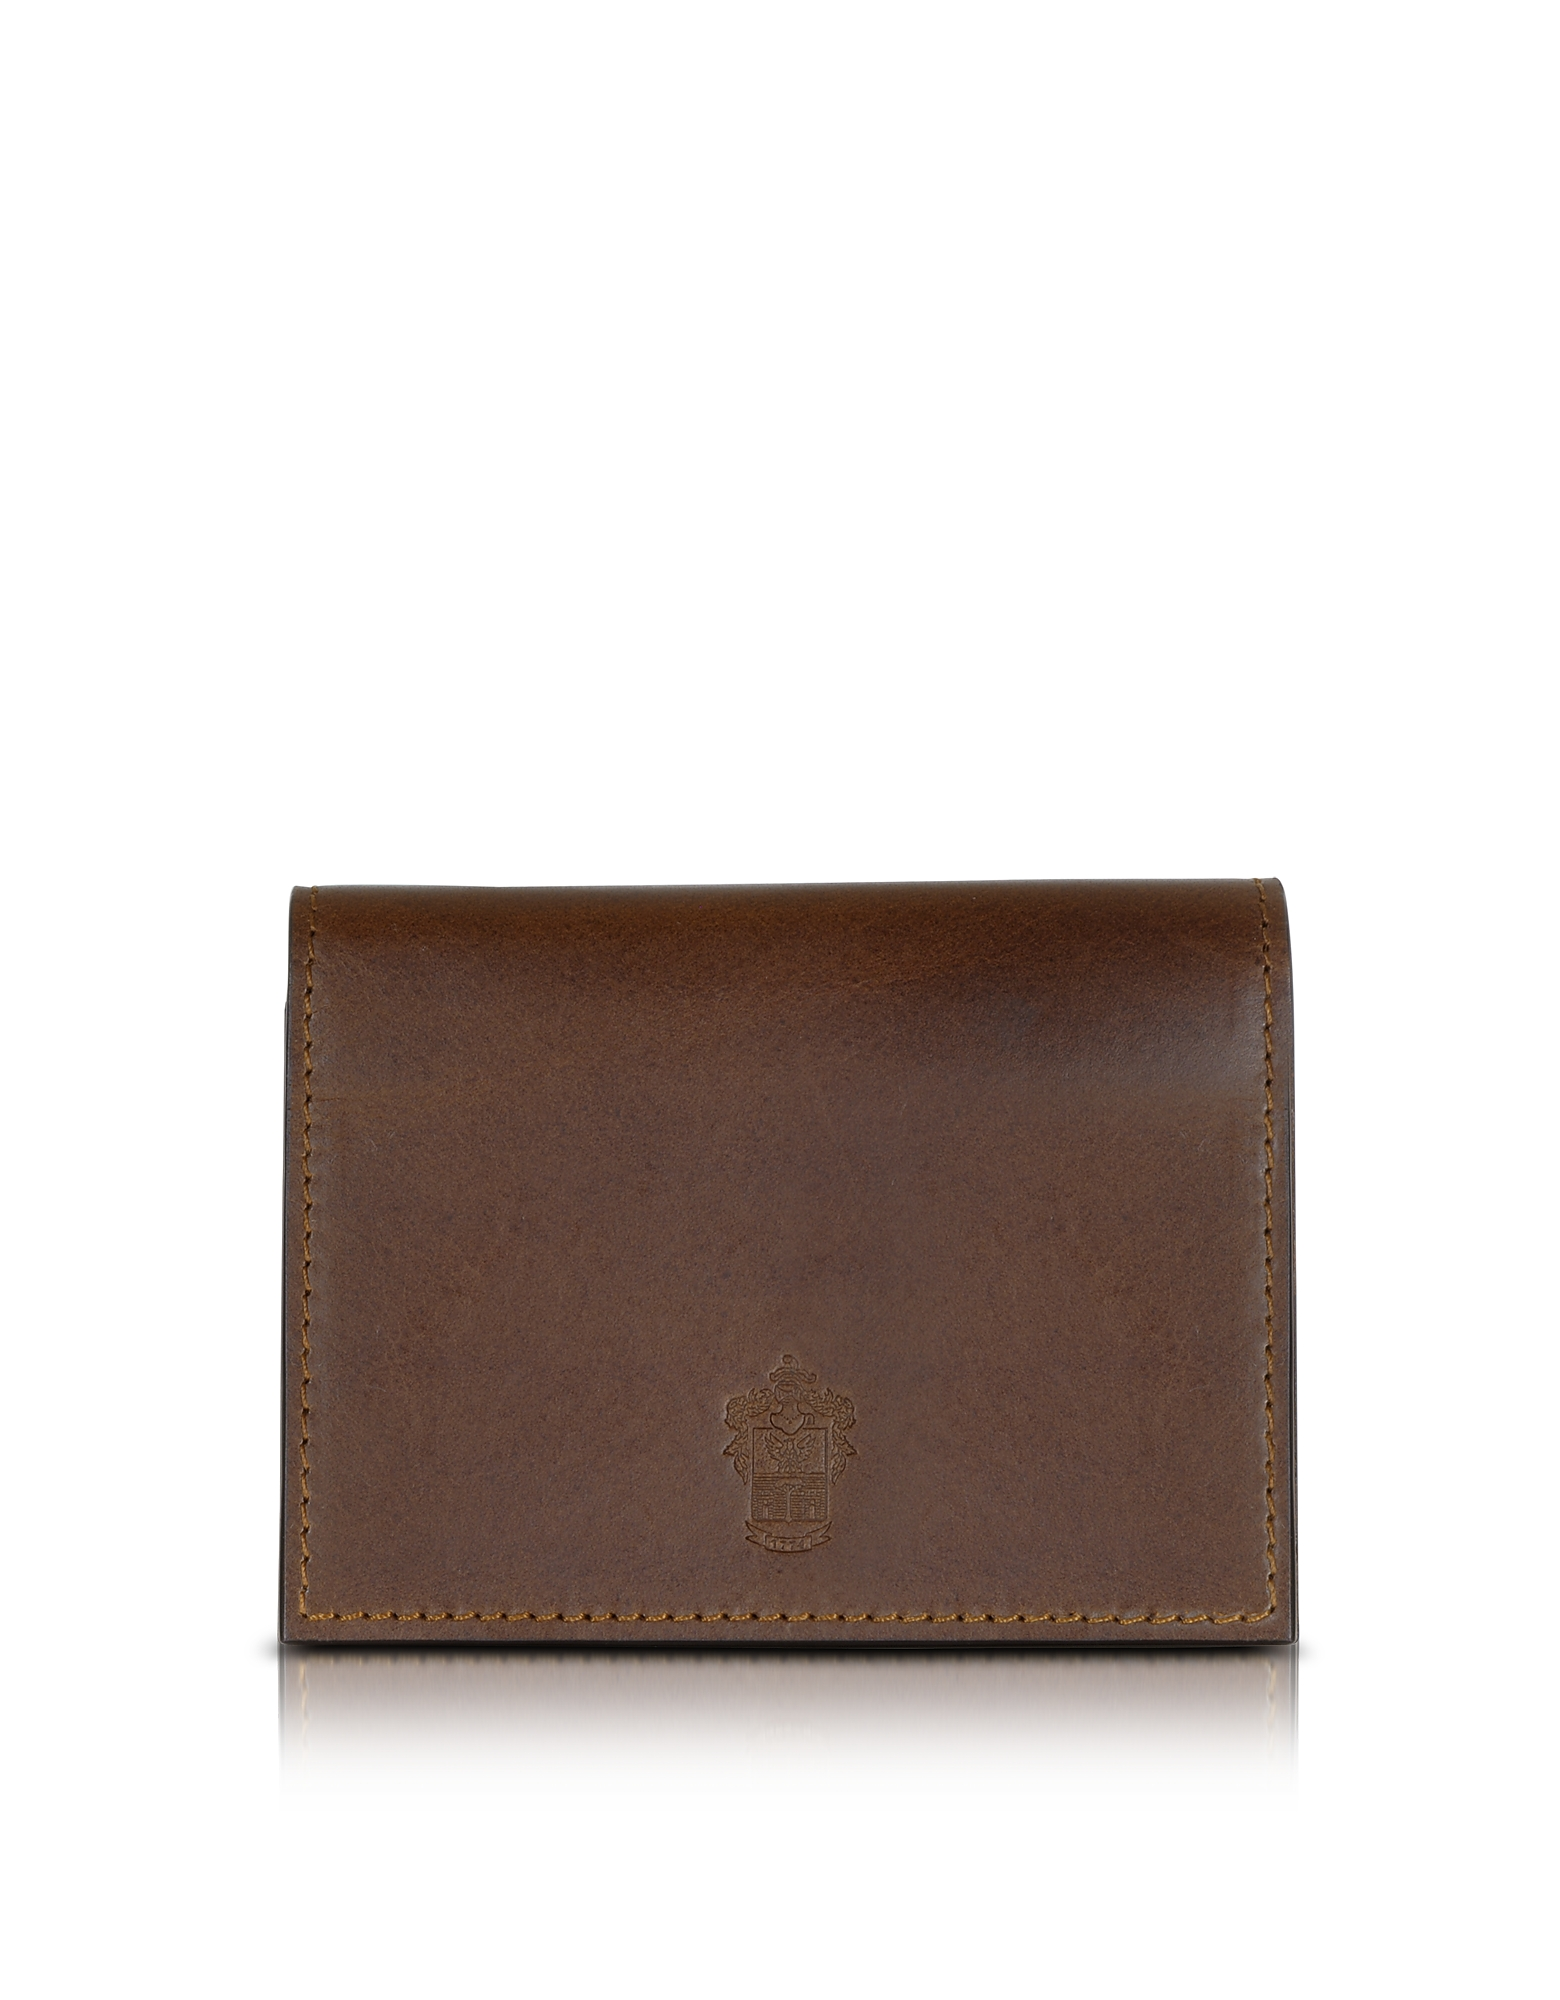 Power Elegance Double Dark Brown Leather Card Holder